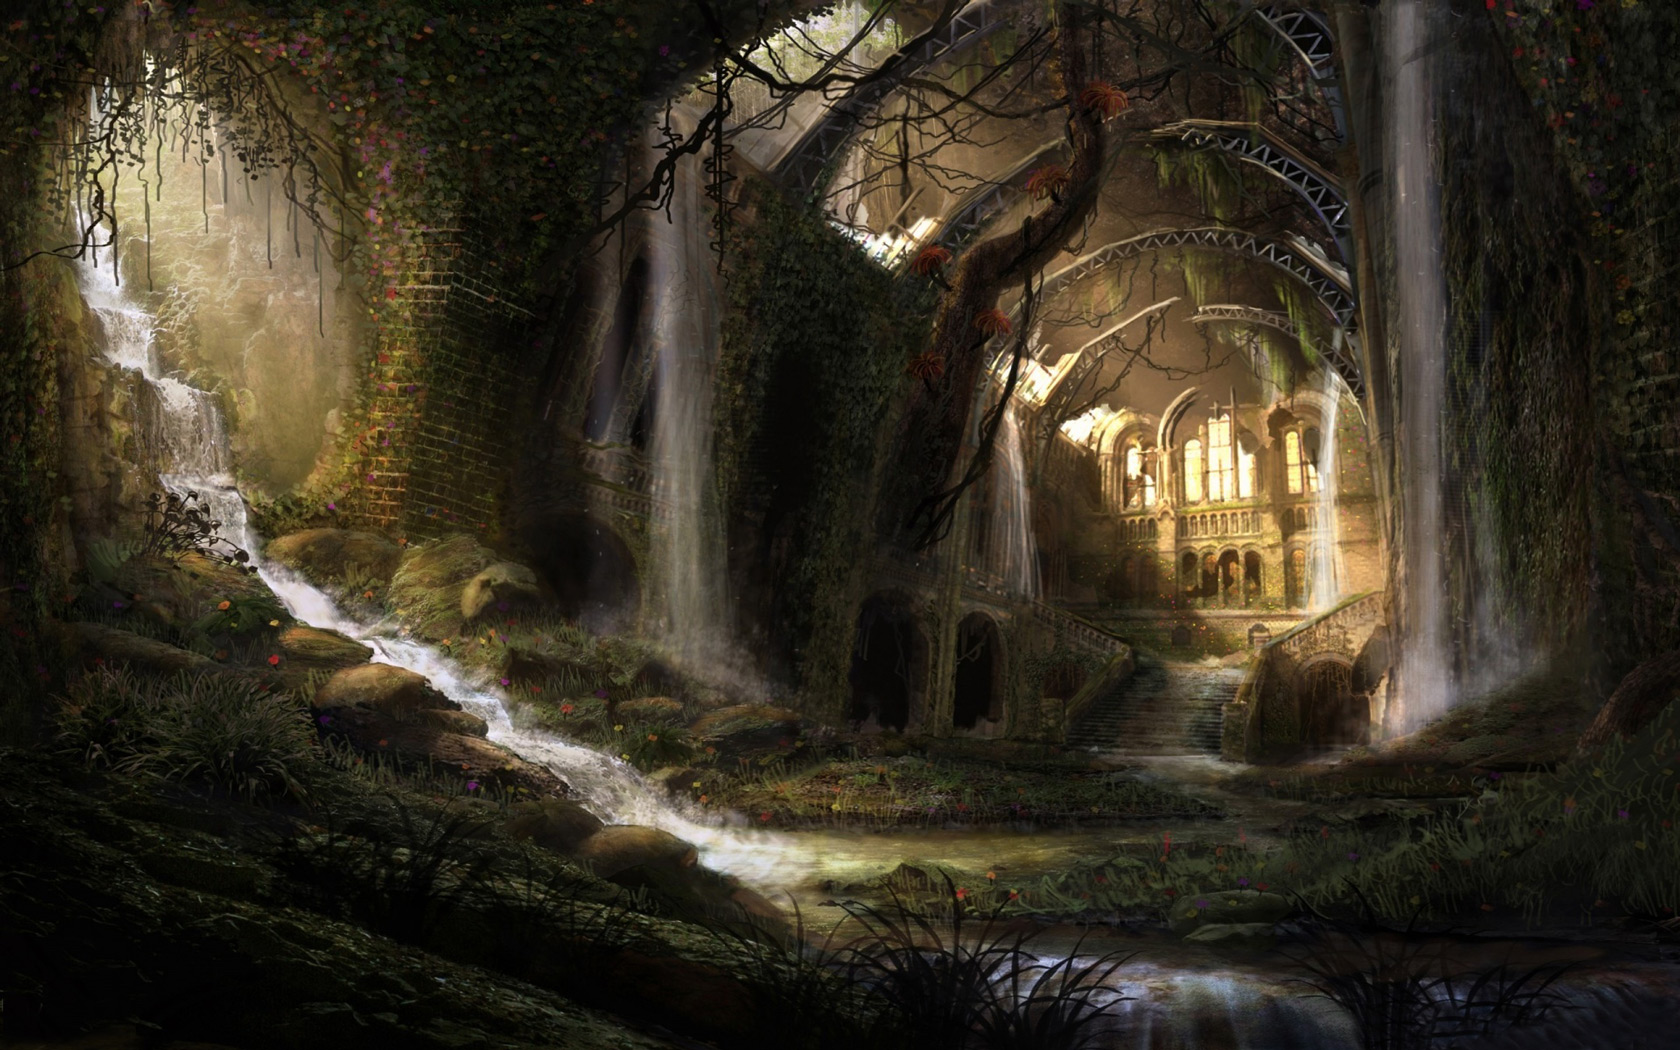 FantasyRuins2013_freecomputerdesktopwallpaper_1680.jpg